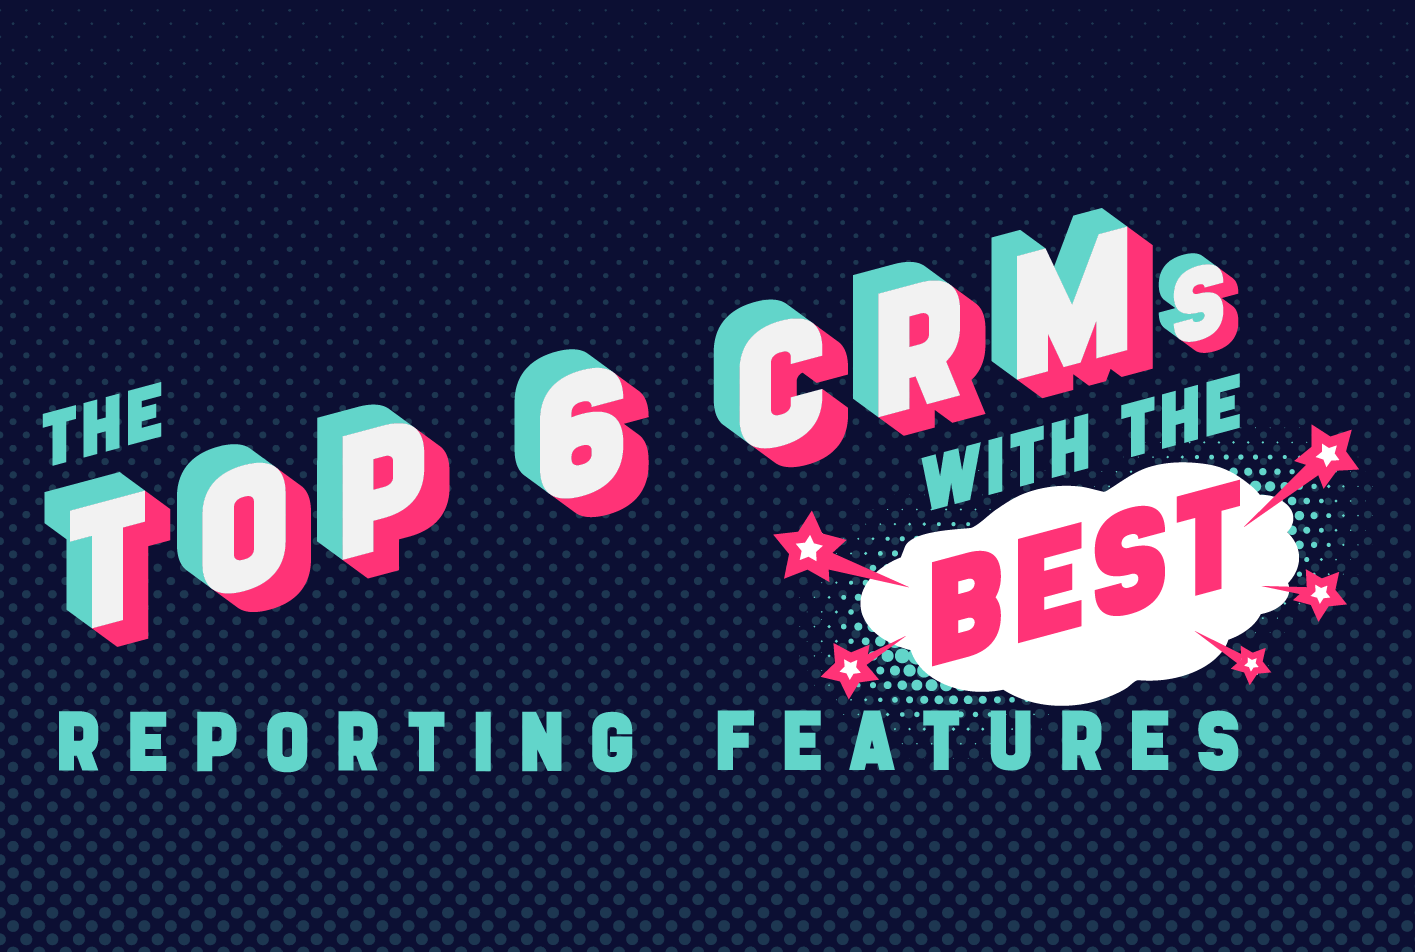 crms with best reporting features crms with best reports